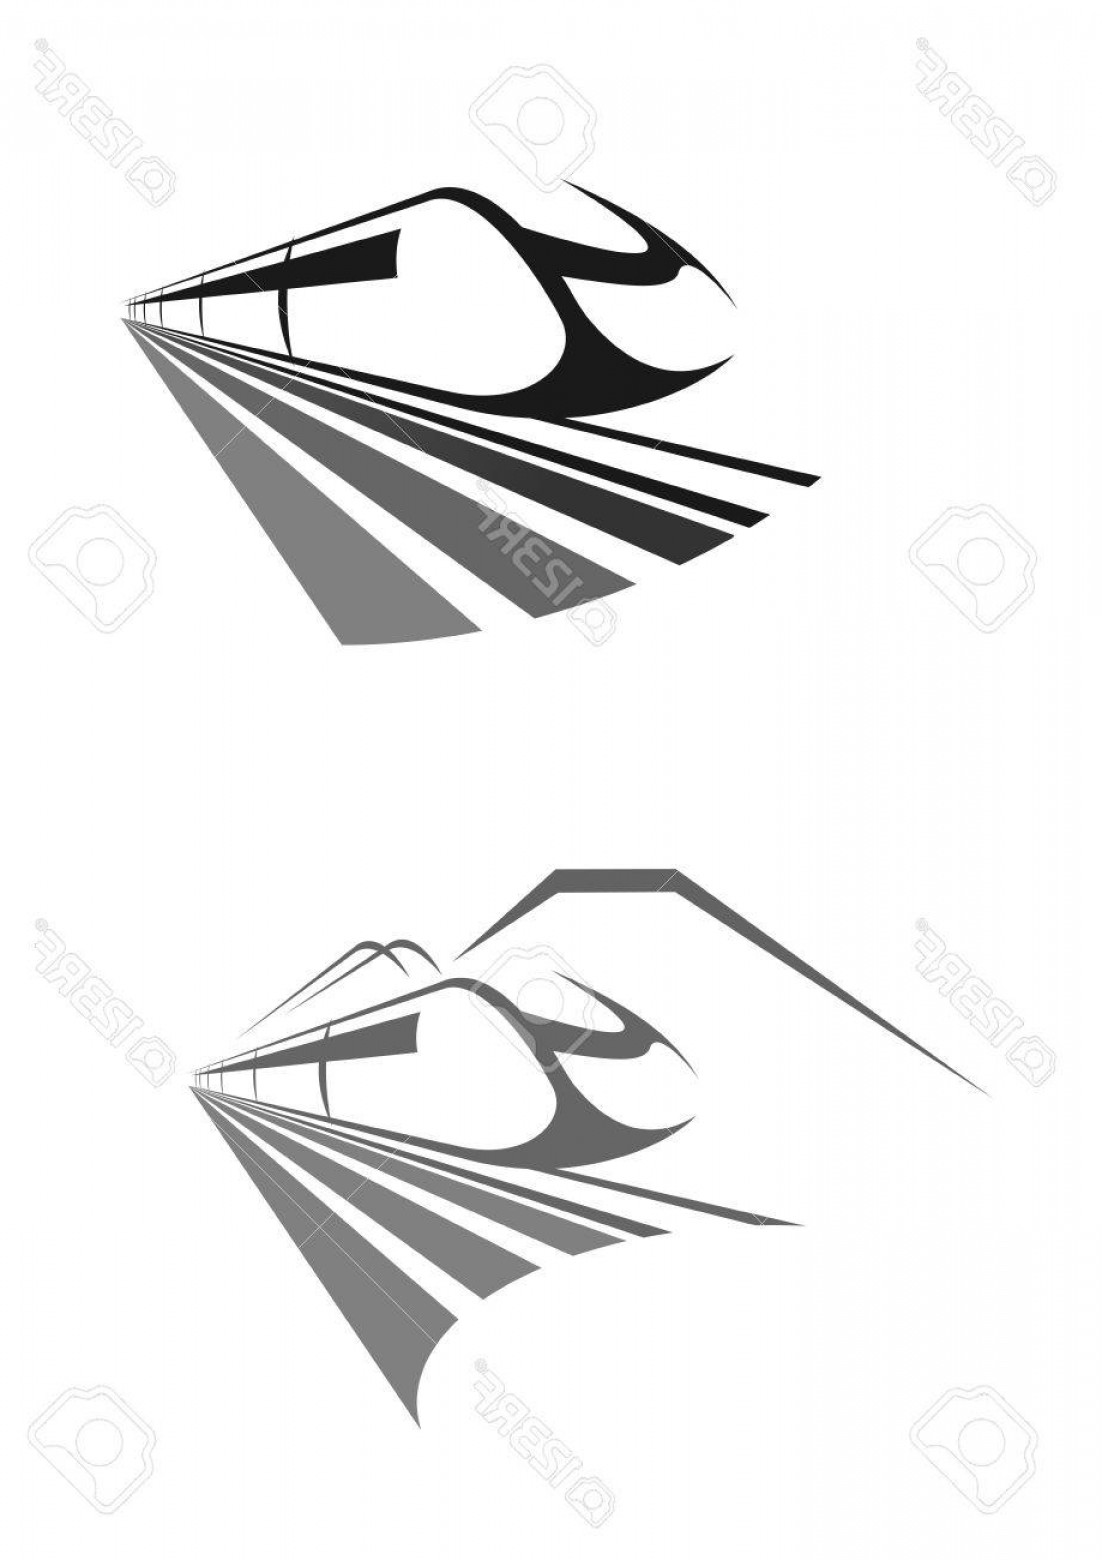 Railroad Logos Vector Format: Photostock Vector High Speed Train Icon Intercity Express Rail Or Railway Transport Vector Emblem For Urban Monorail M